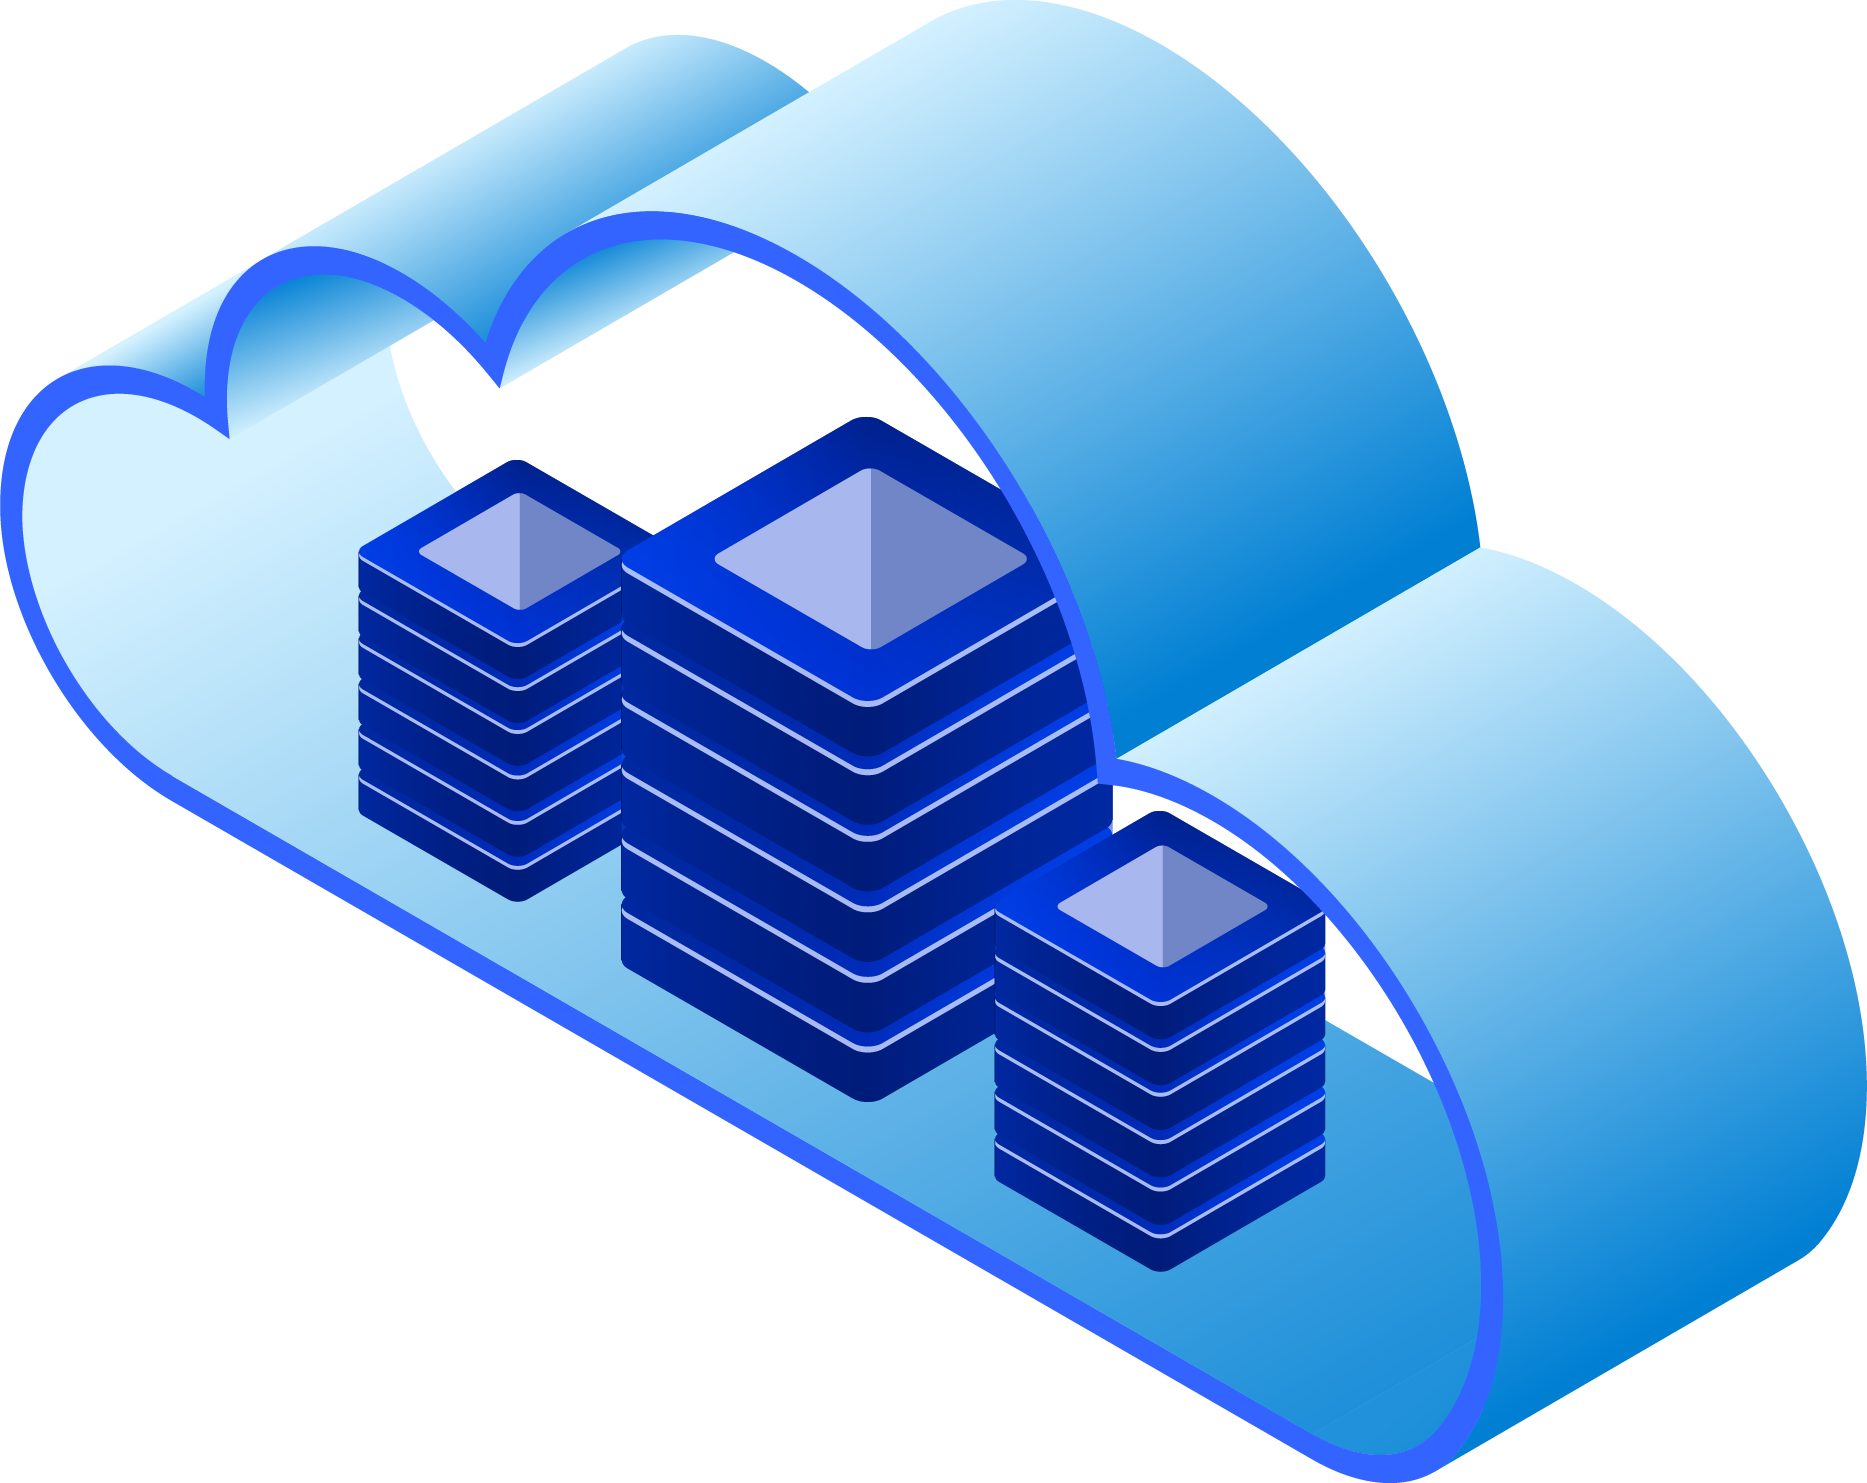 Cloudalize brings simple, flexible and mobile cloud storage options to your business.